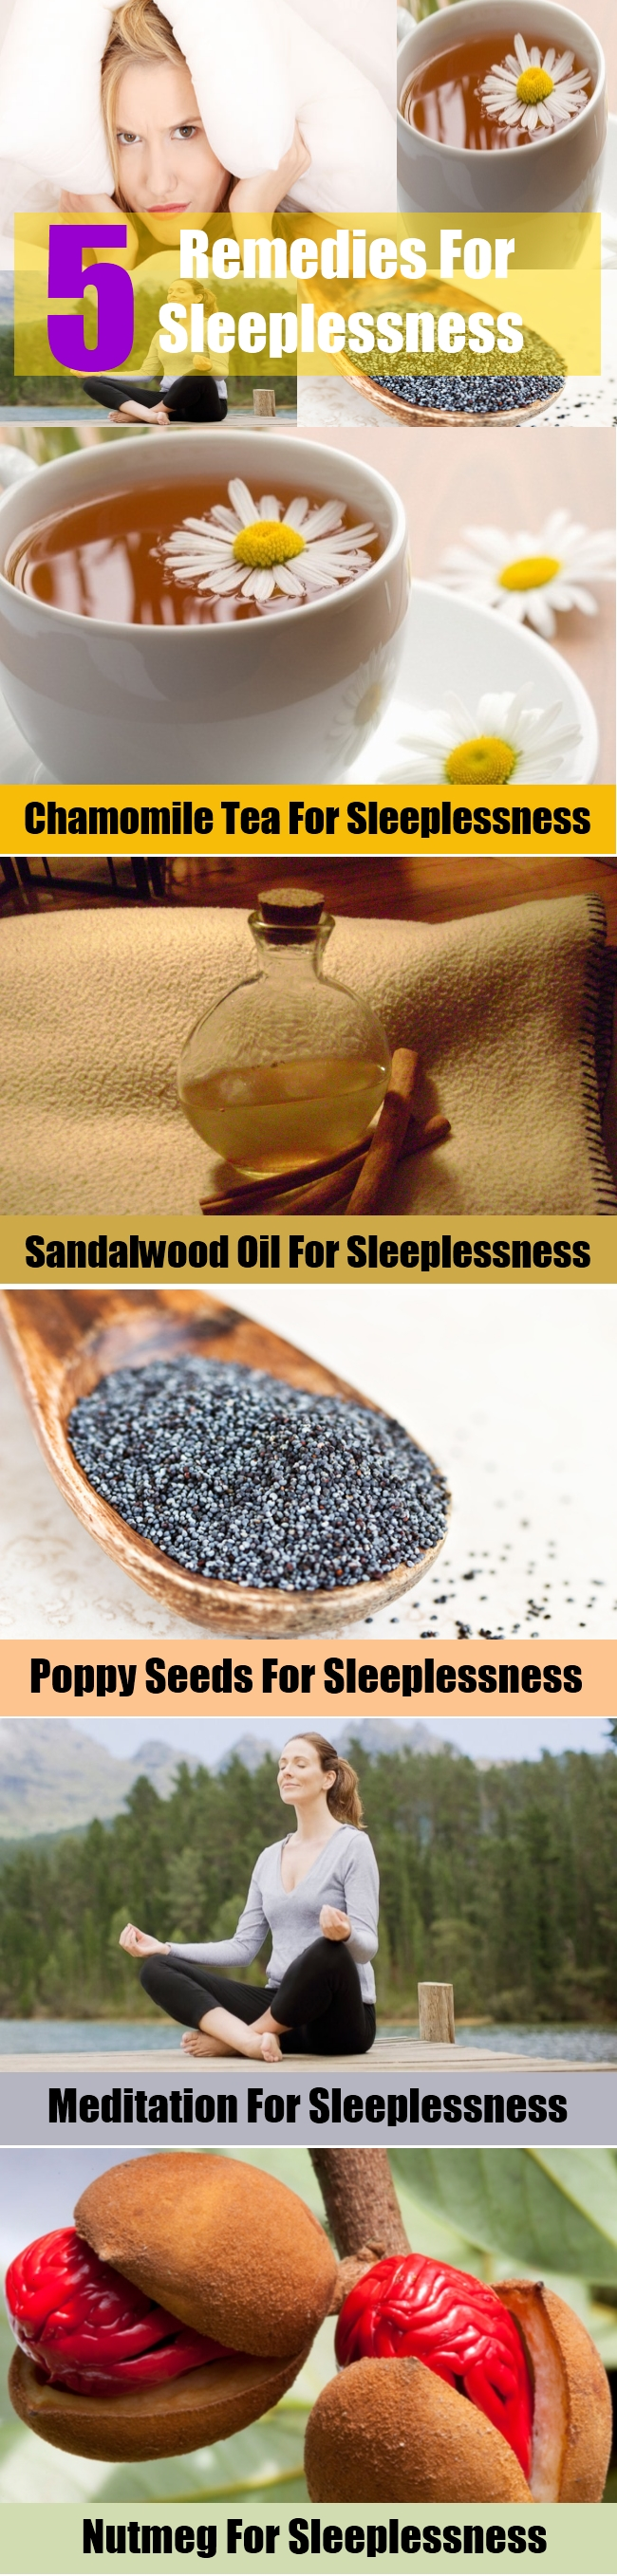 Natural Remedies For Sleeplessness In Pregnancy